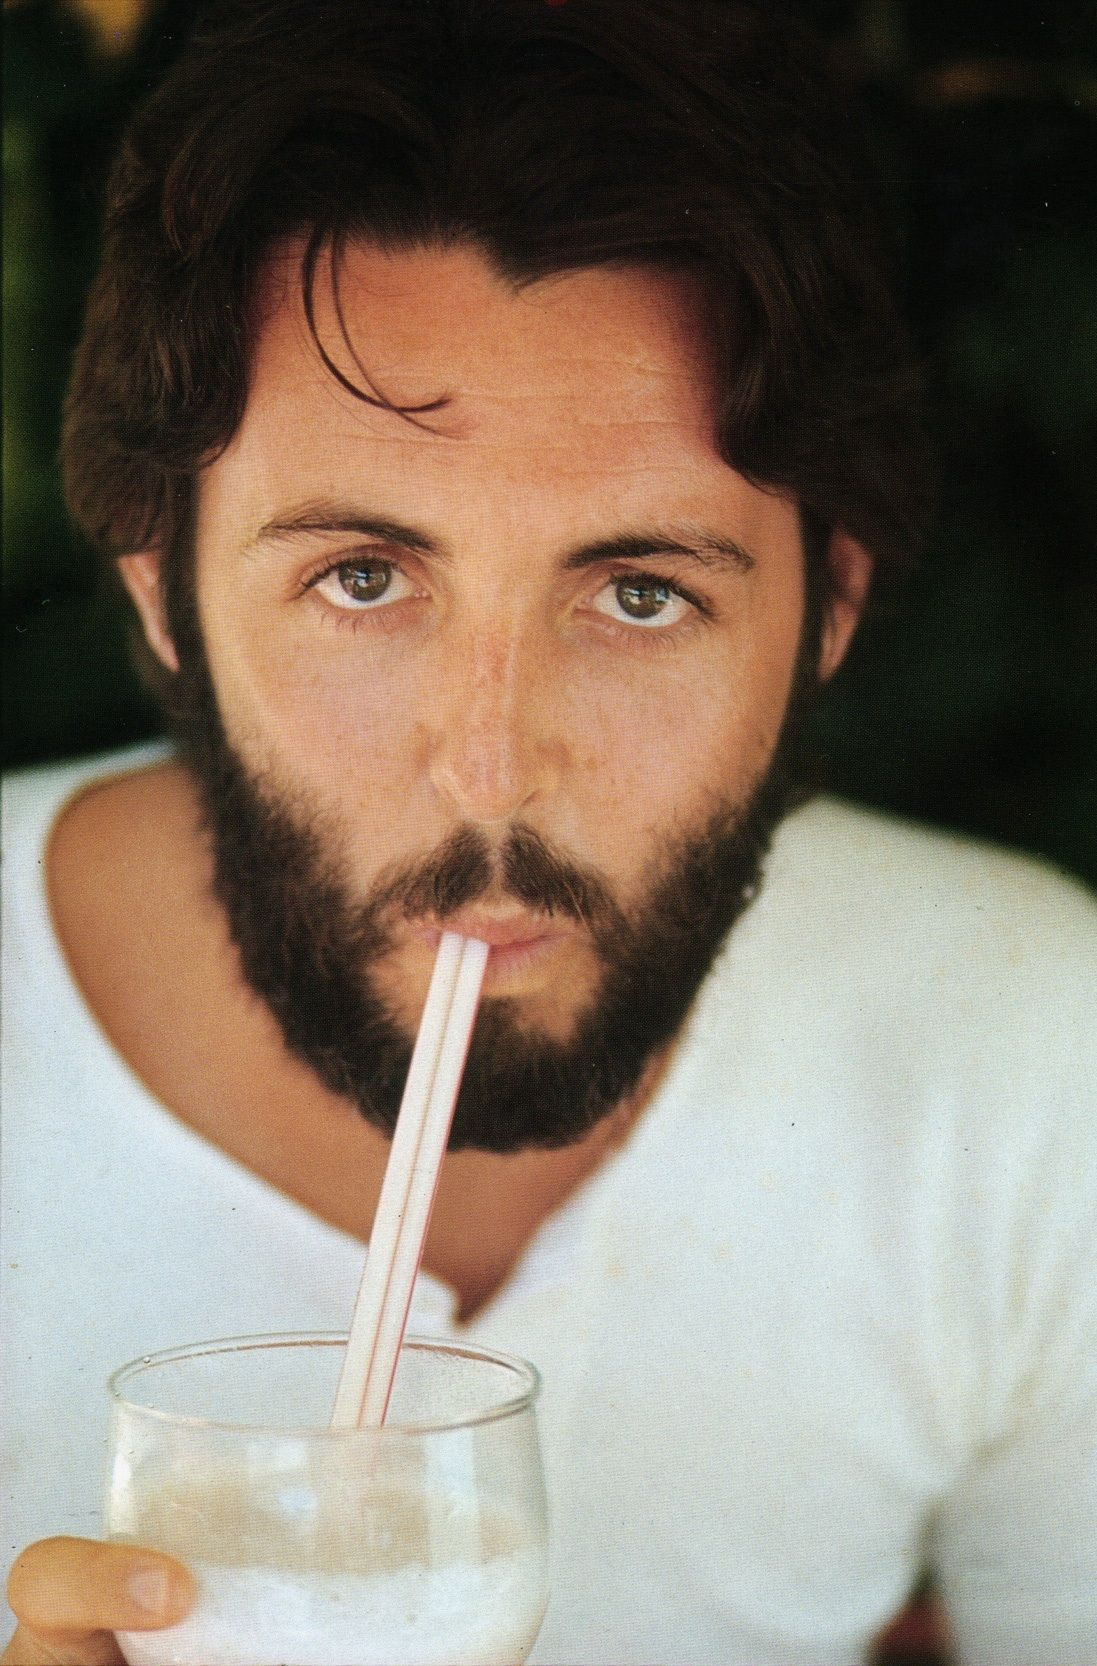 70s Paul McCartney (who is weirdly channeling Sylvester Stallone's eyes a little bit here)